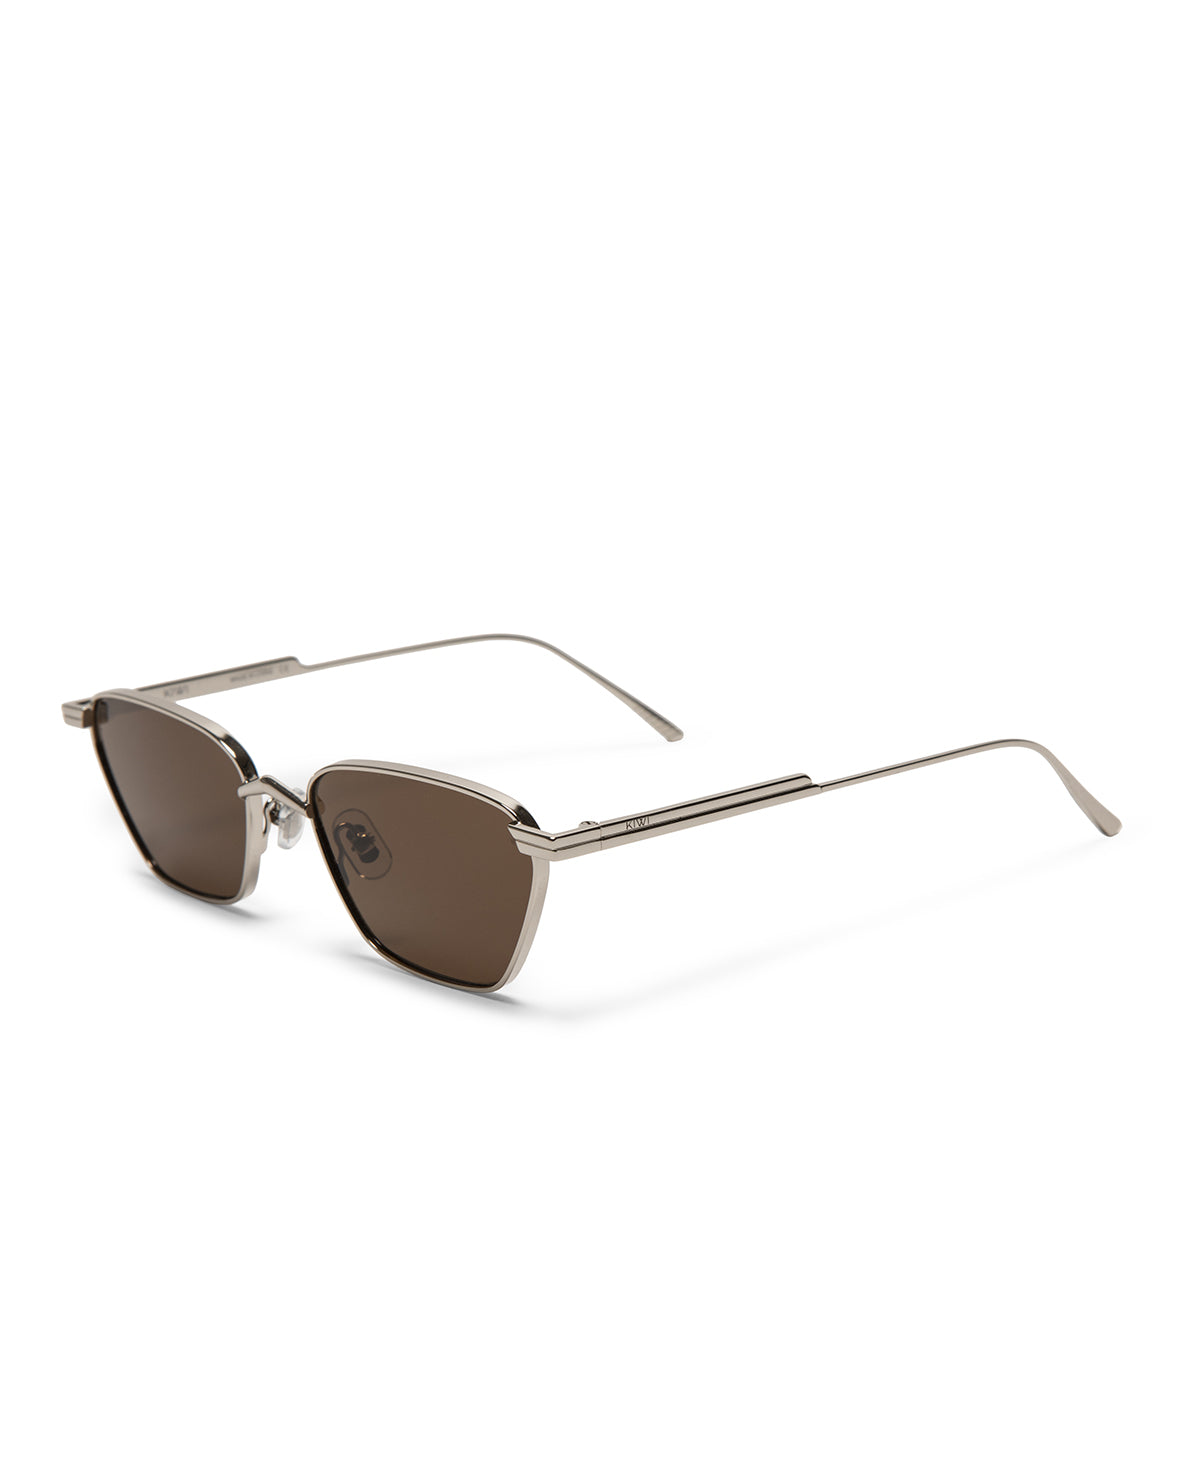 KIWIVISION 2020 Collection NERD Sunglasses unisex